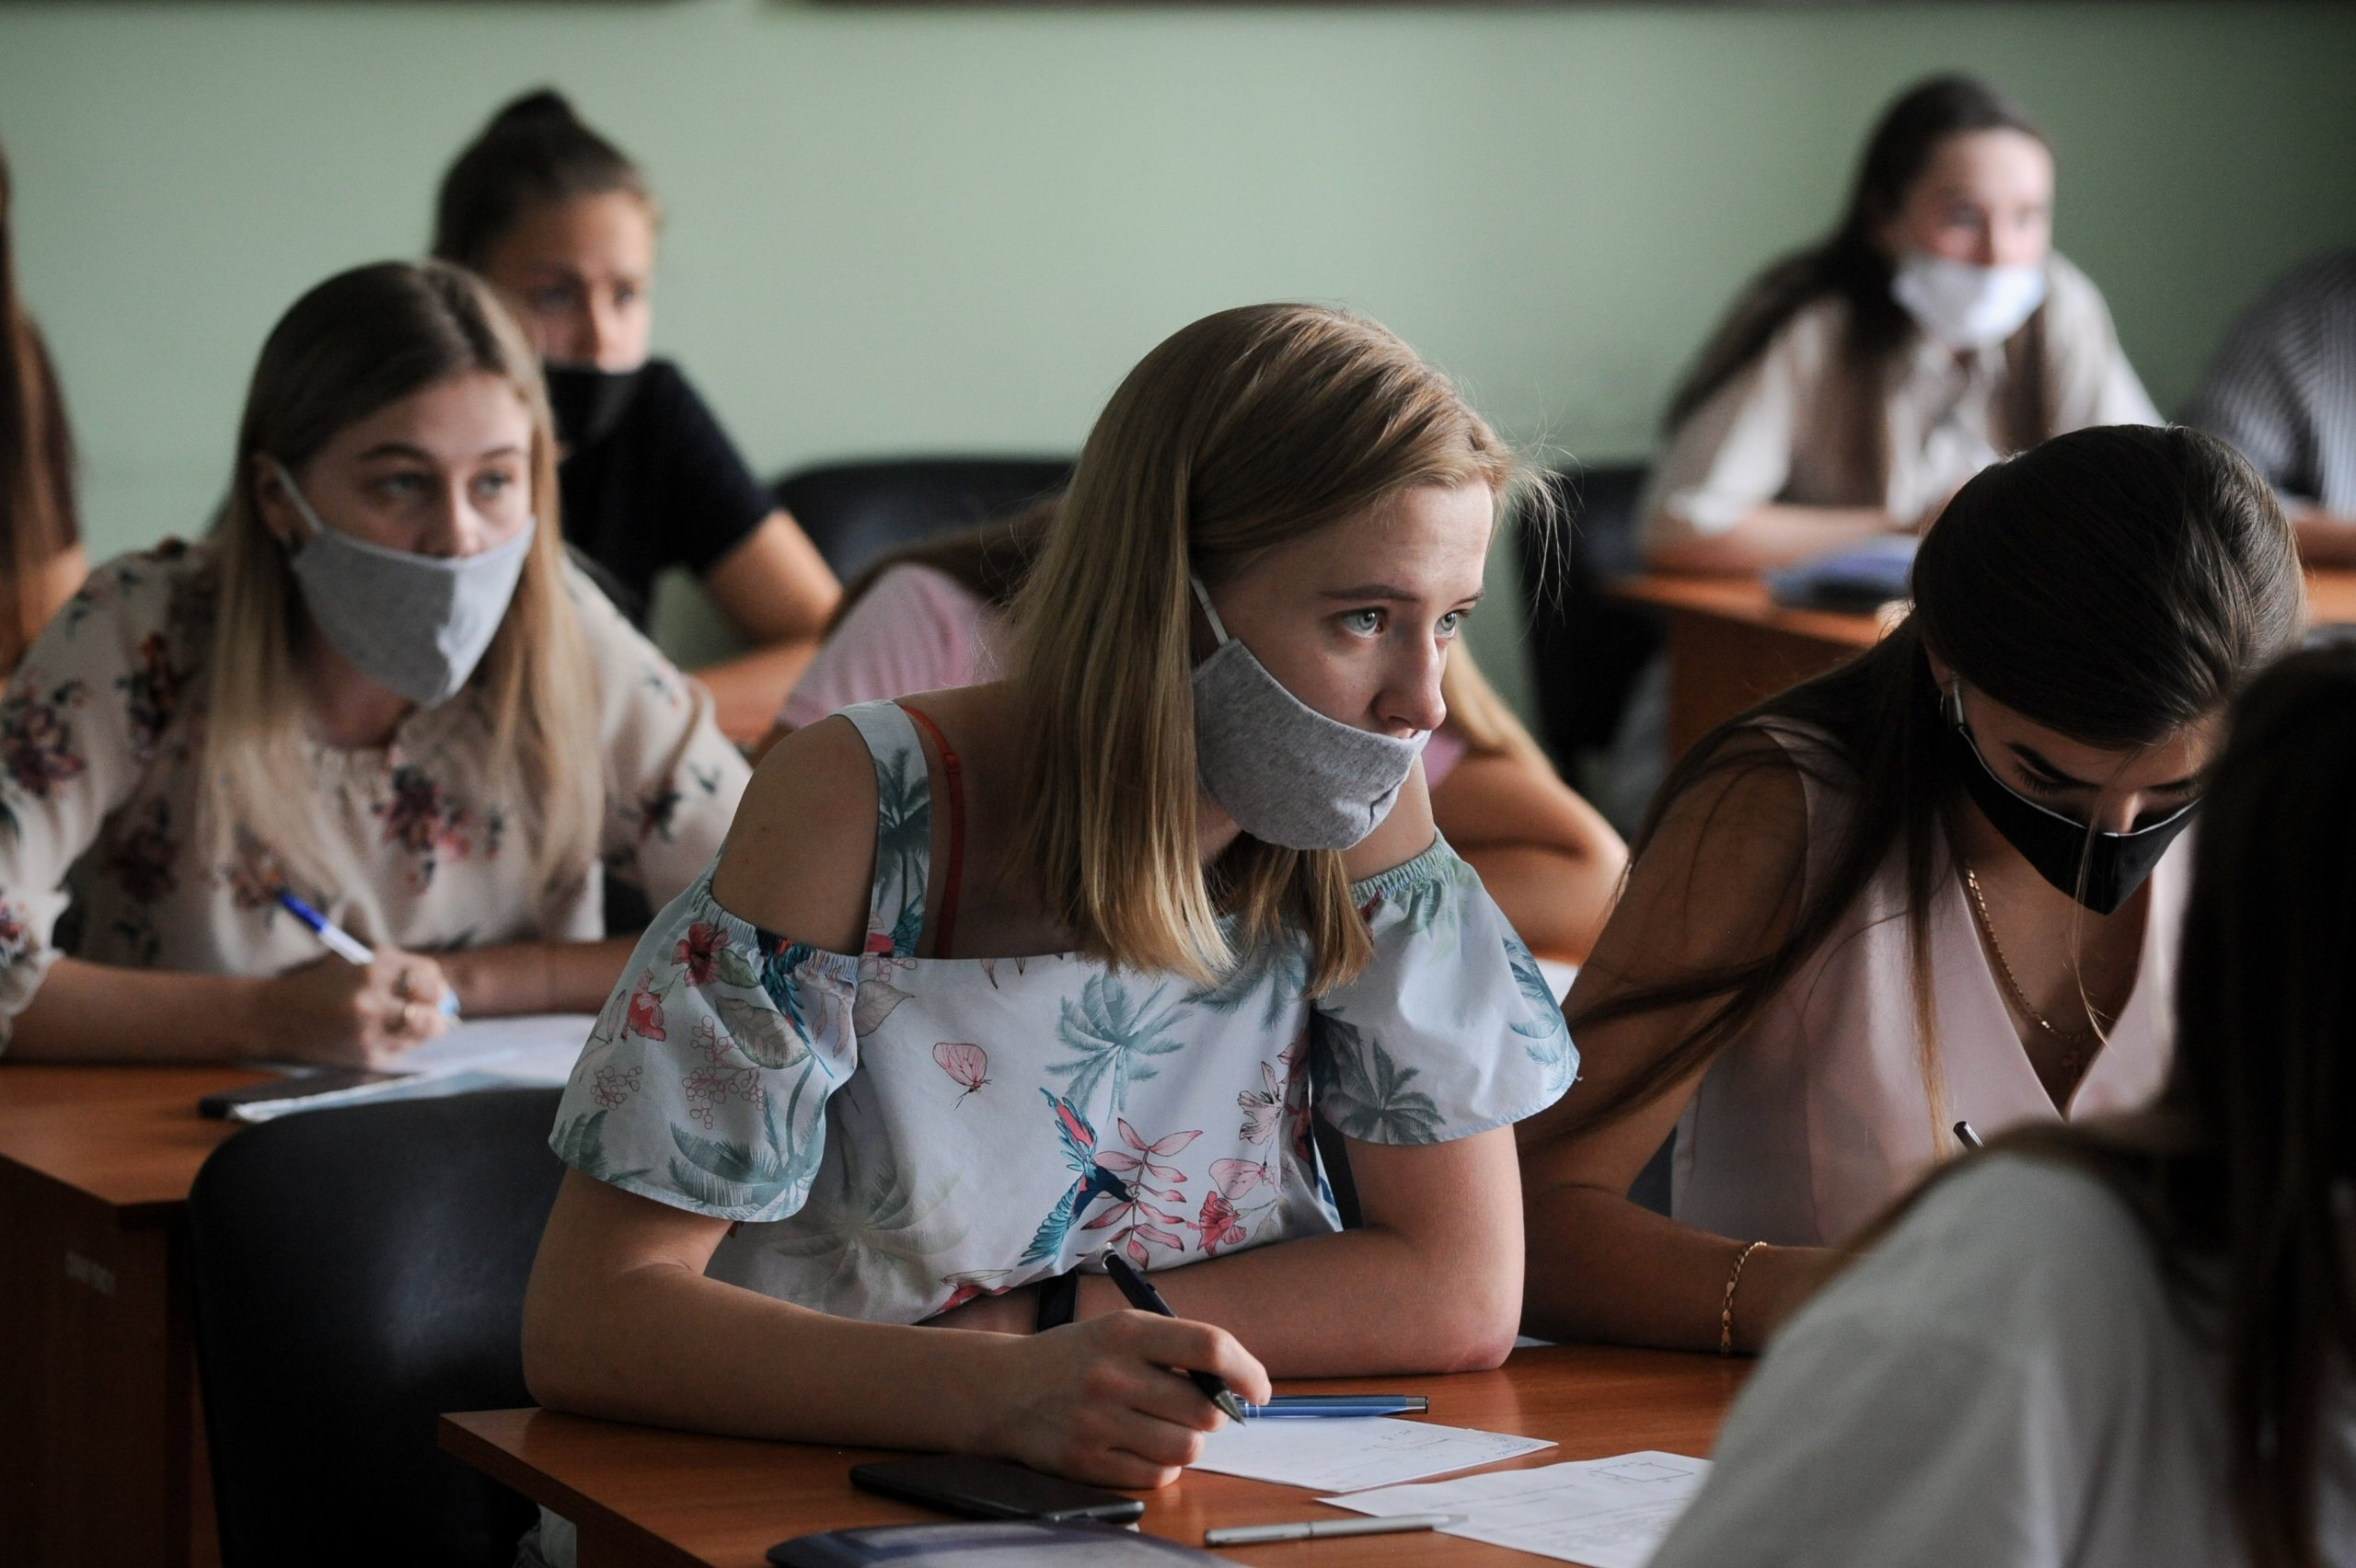 Female students of Tambov University are seen wearing